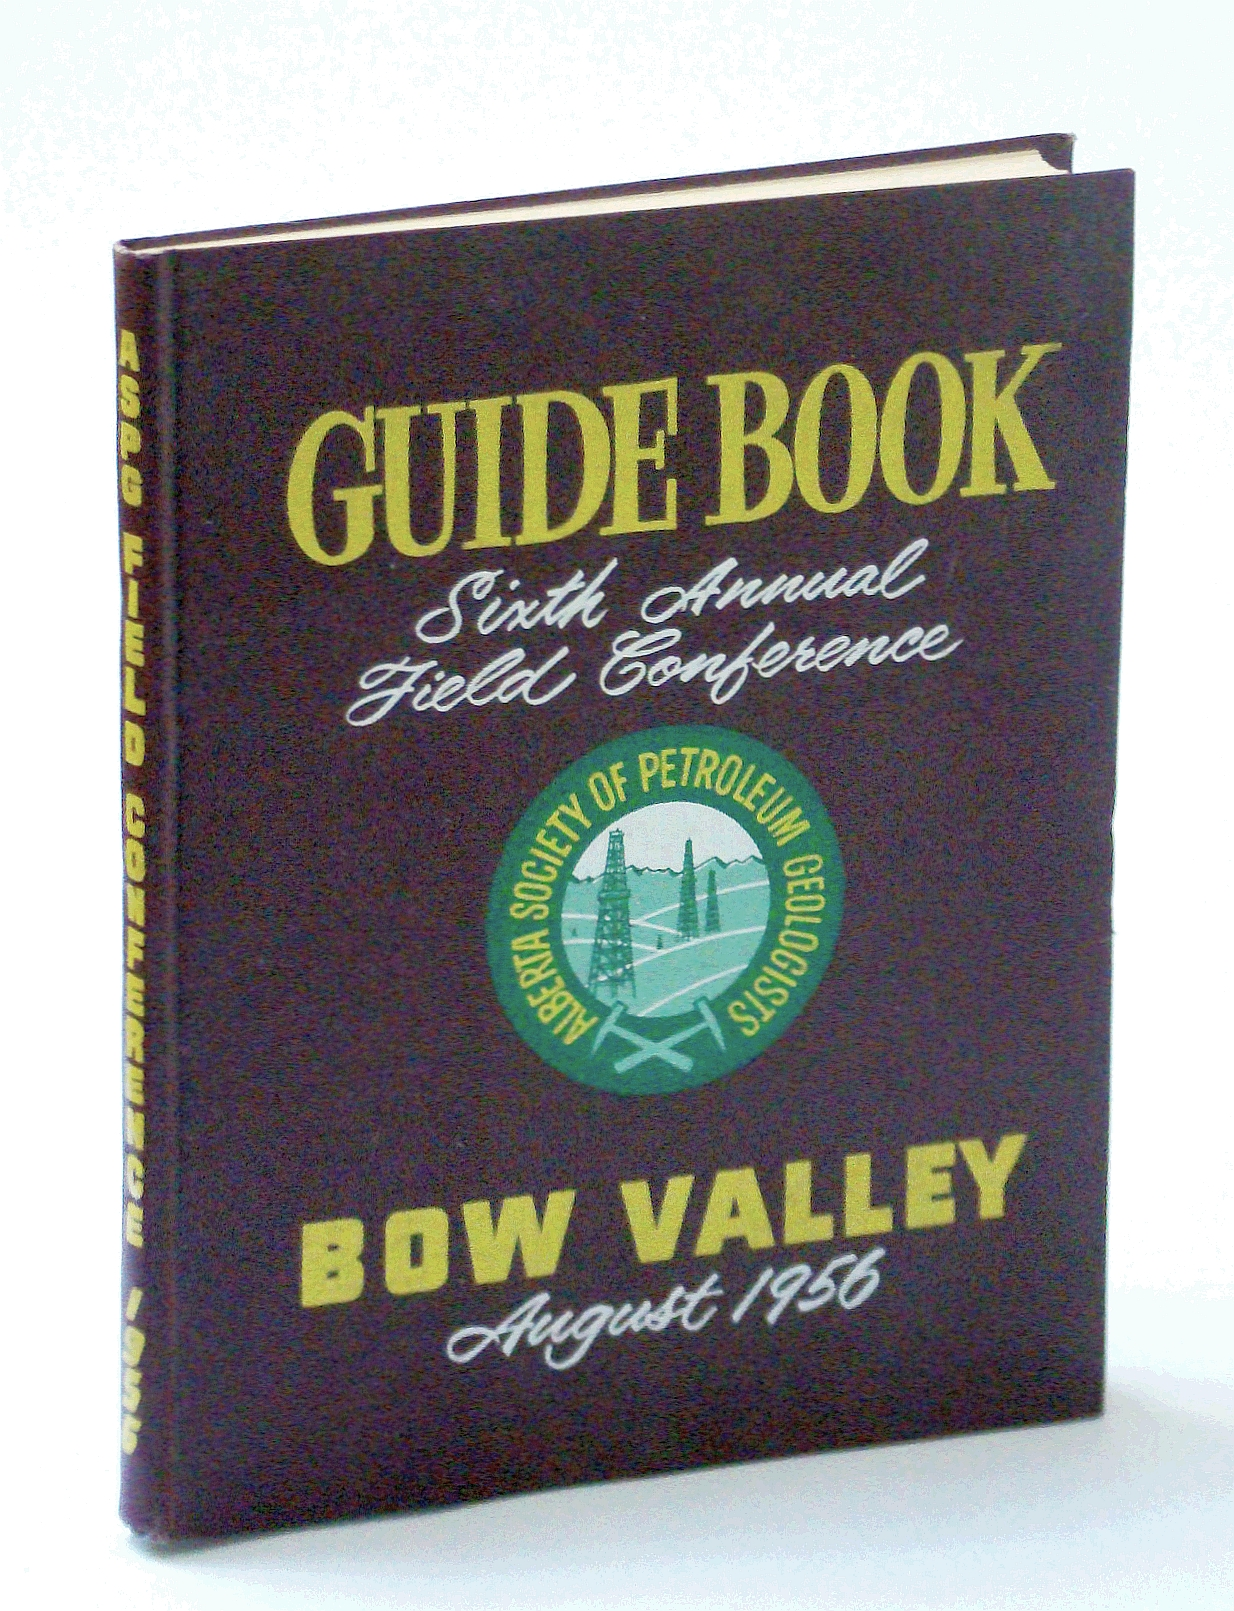 Image for Guide Book. Sixth Annual Field Conference Bow Valley September, 1956.